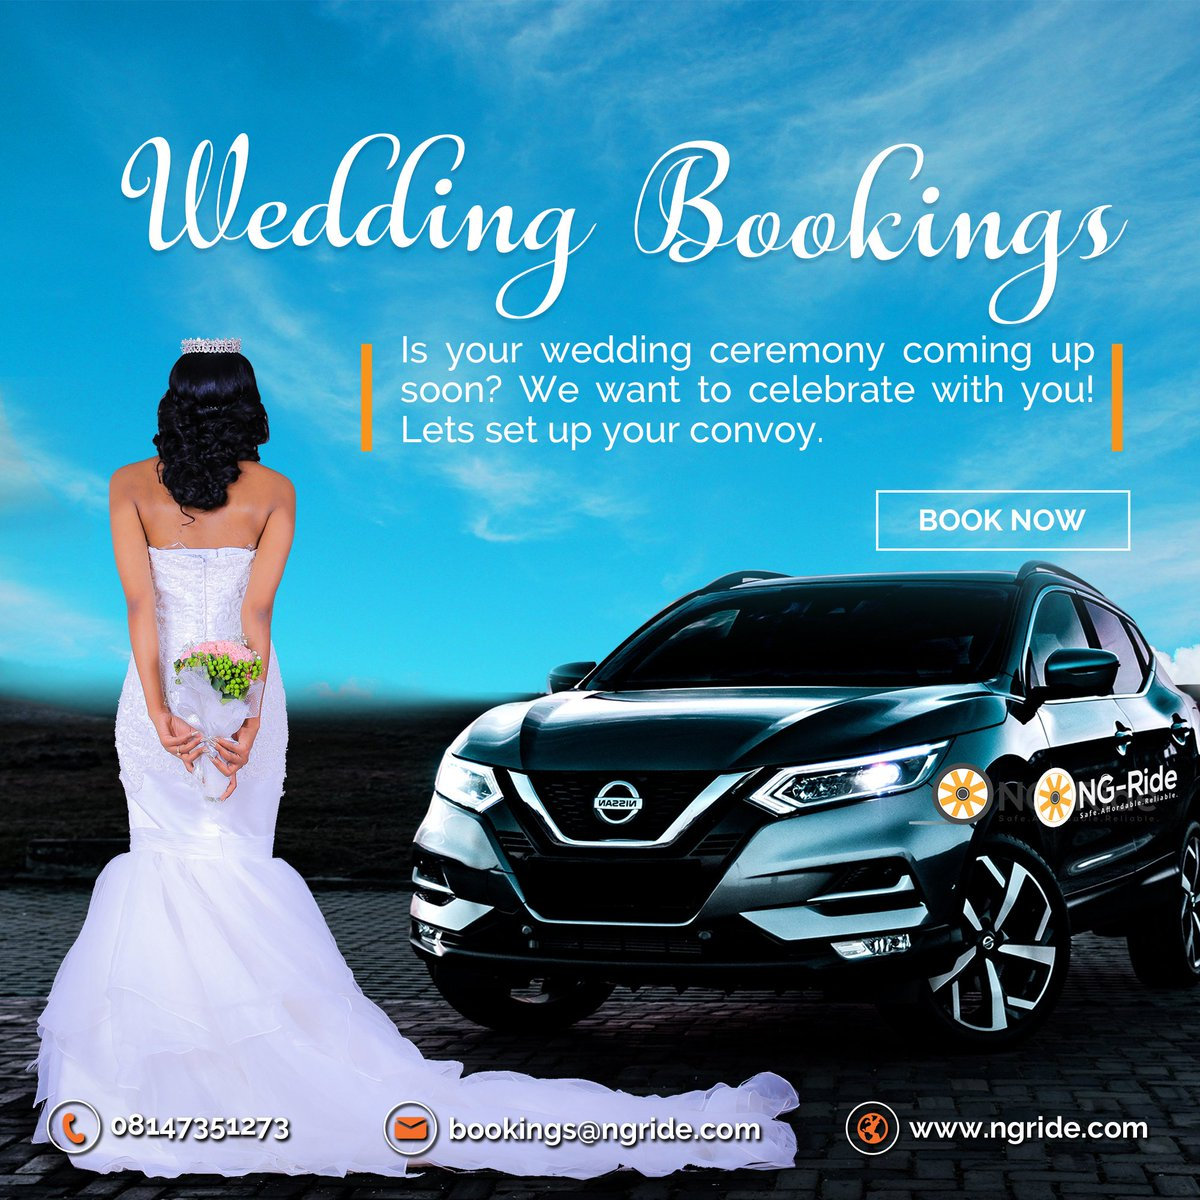 At NG-Ride we put in our all to see you have a blissful wedding.  Book a ride with us and we will guarantee you a comfortable ride. Email or call us now  bookings@ngride.com, 08147351273. #thankgoditsfriday #weekends #weddingparty #saturdayareforweddings #drivers #naijawedding